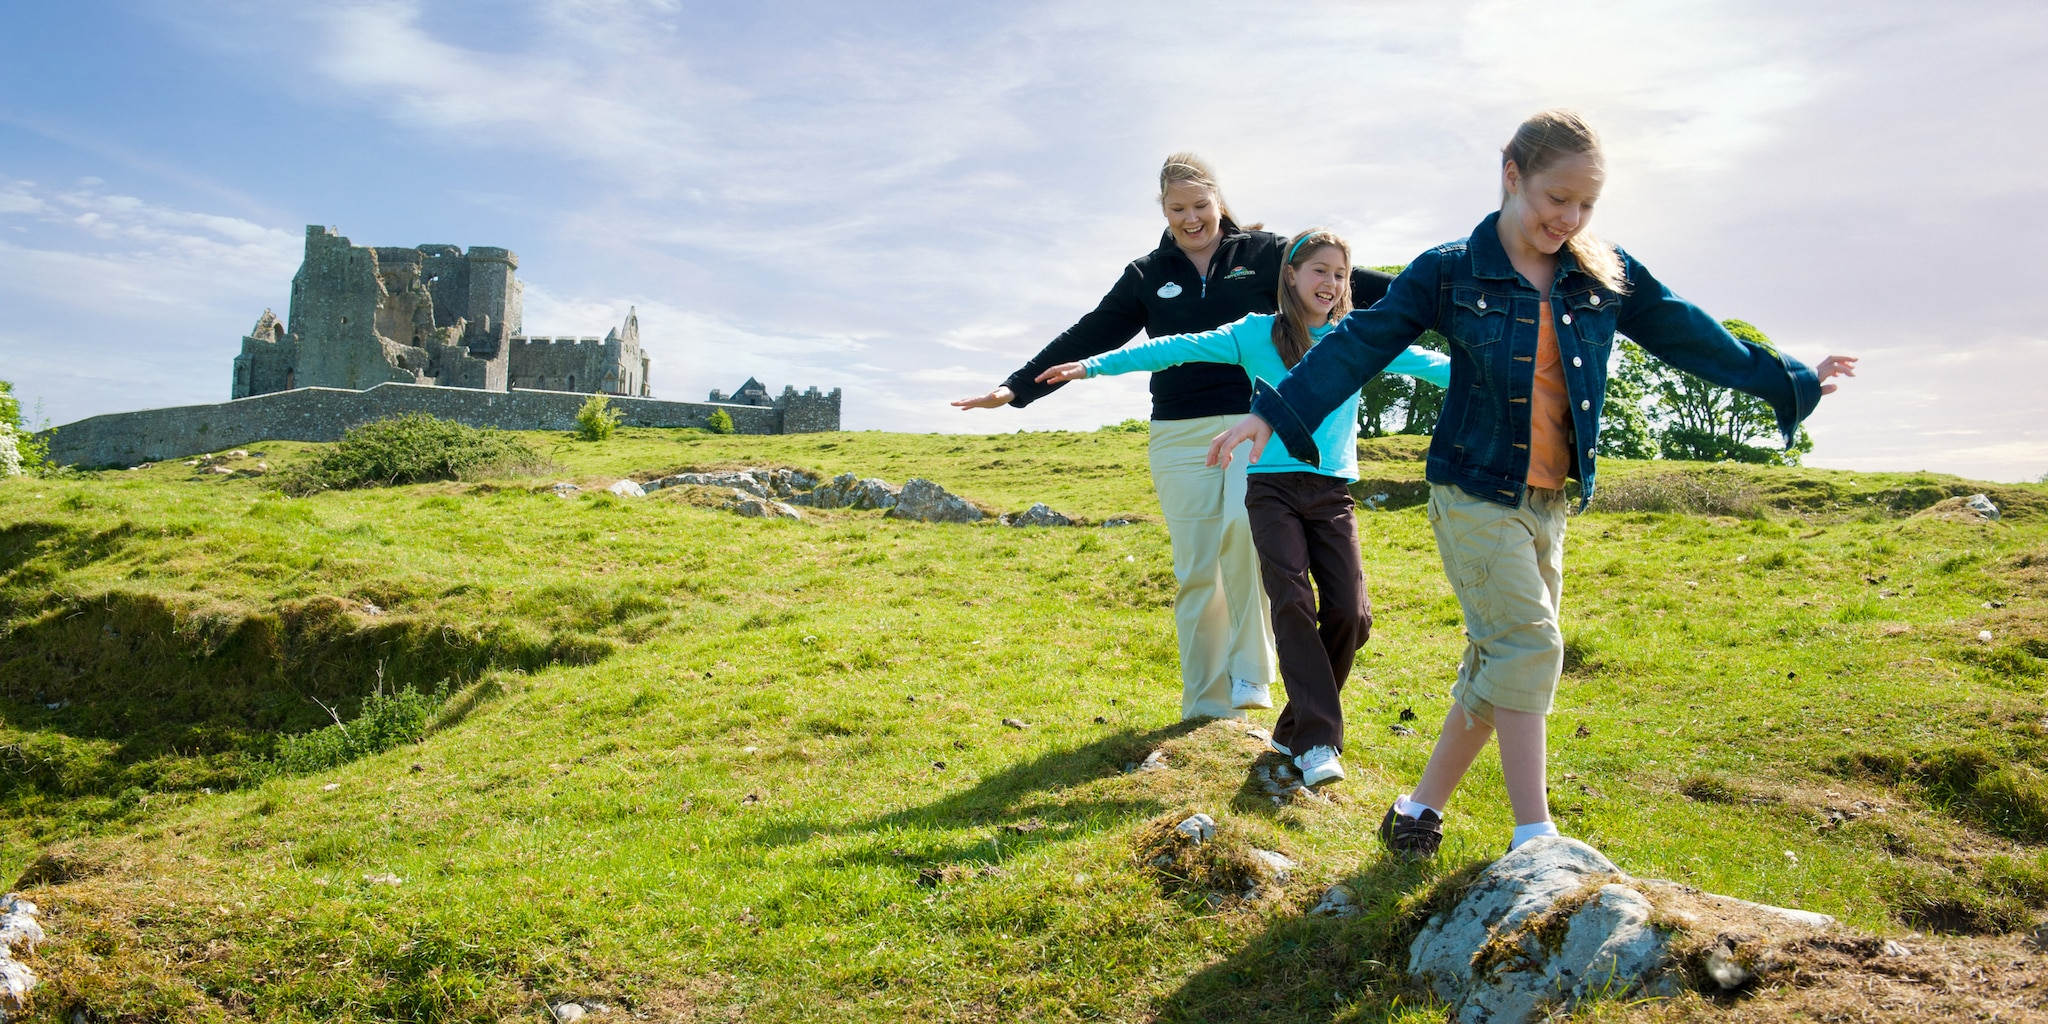 The Rock of Cashel is one stop on the Ireland tour